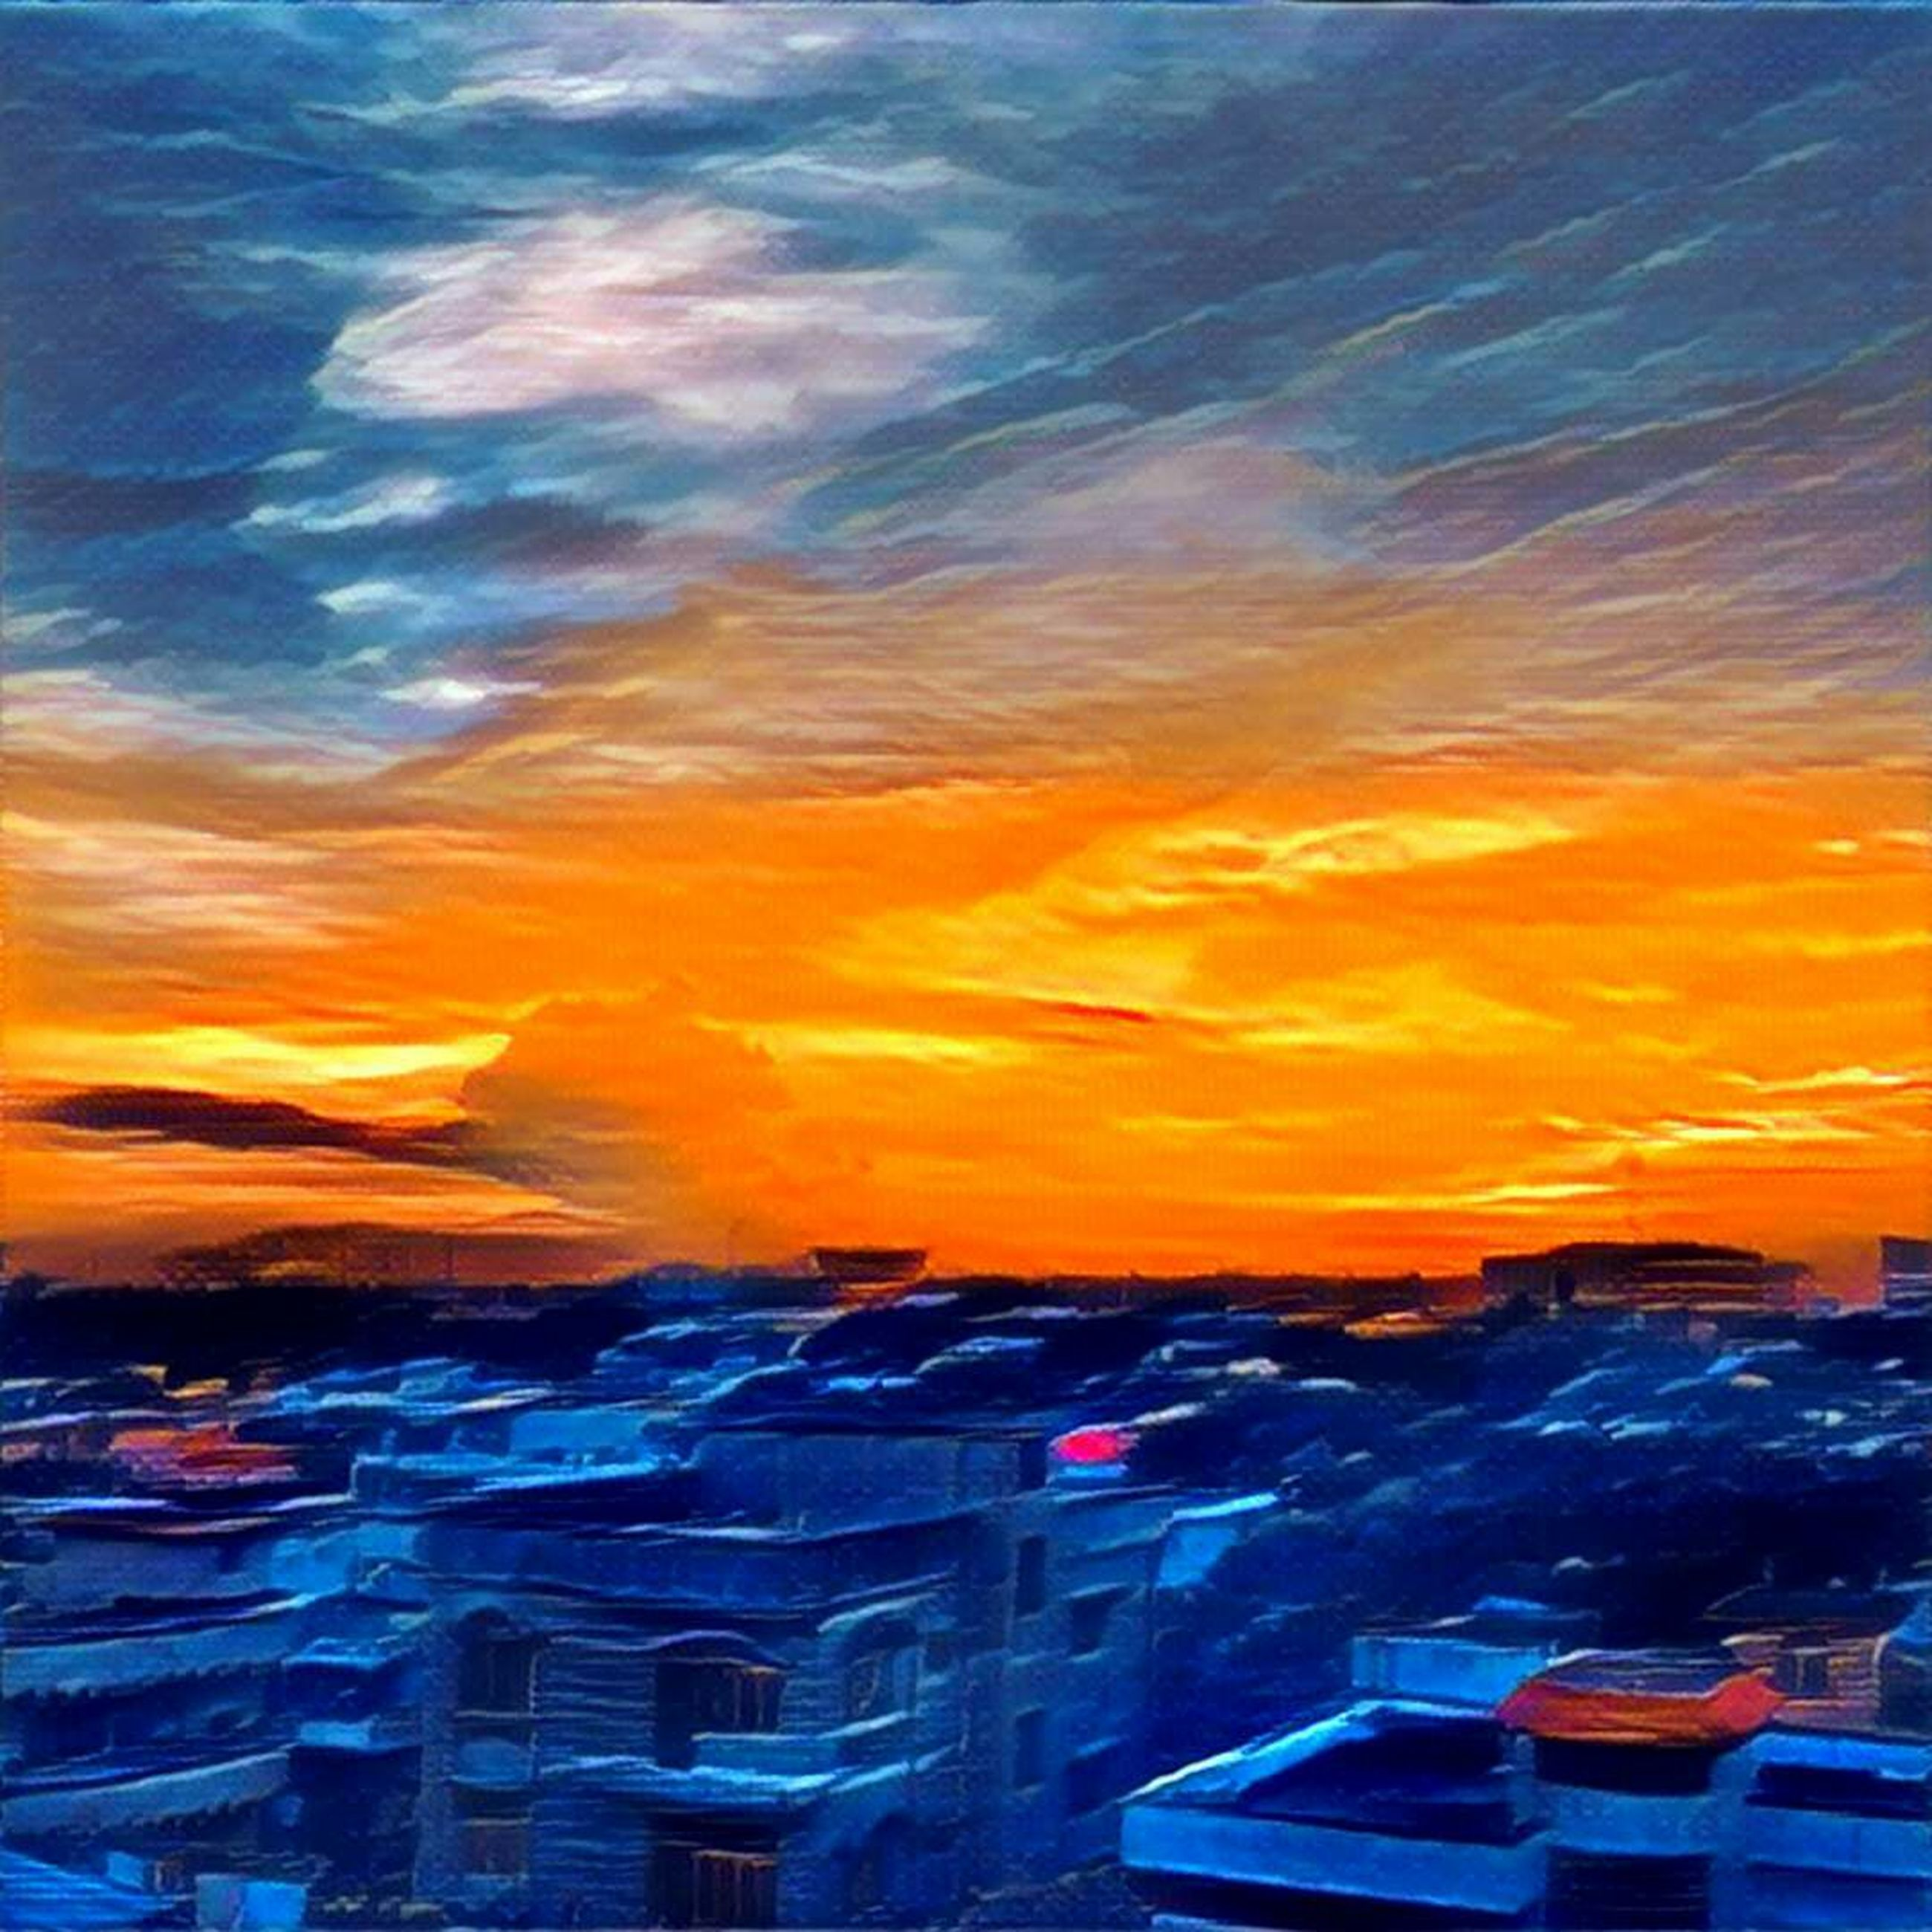 sunset, cloud, multi colored, orange color, city, cloud - sky, scenics, dramatic sky, sea, sky, vibrant color, blue, romantic sky, nature, outdoors, aerial view, moody sky, no people, cloudscape, colorful, city life, beauty in nature, atmosphere, tranquility, tranquil scene